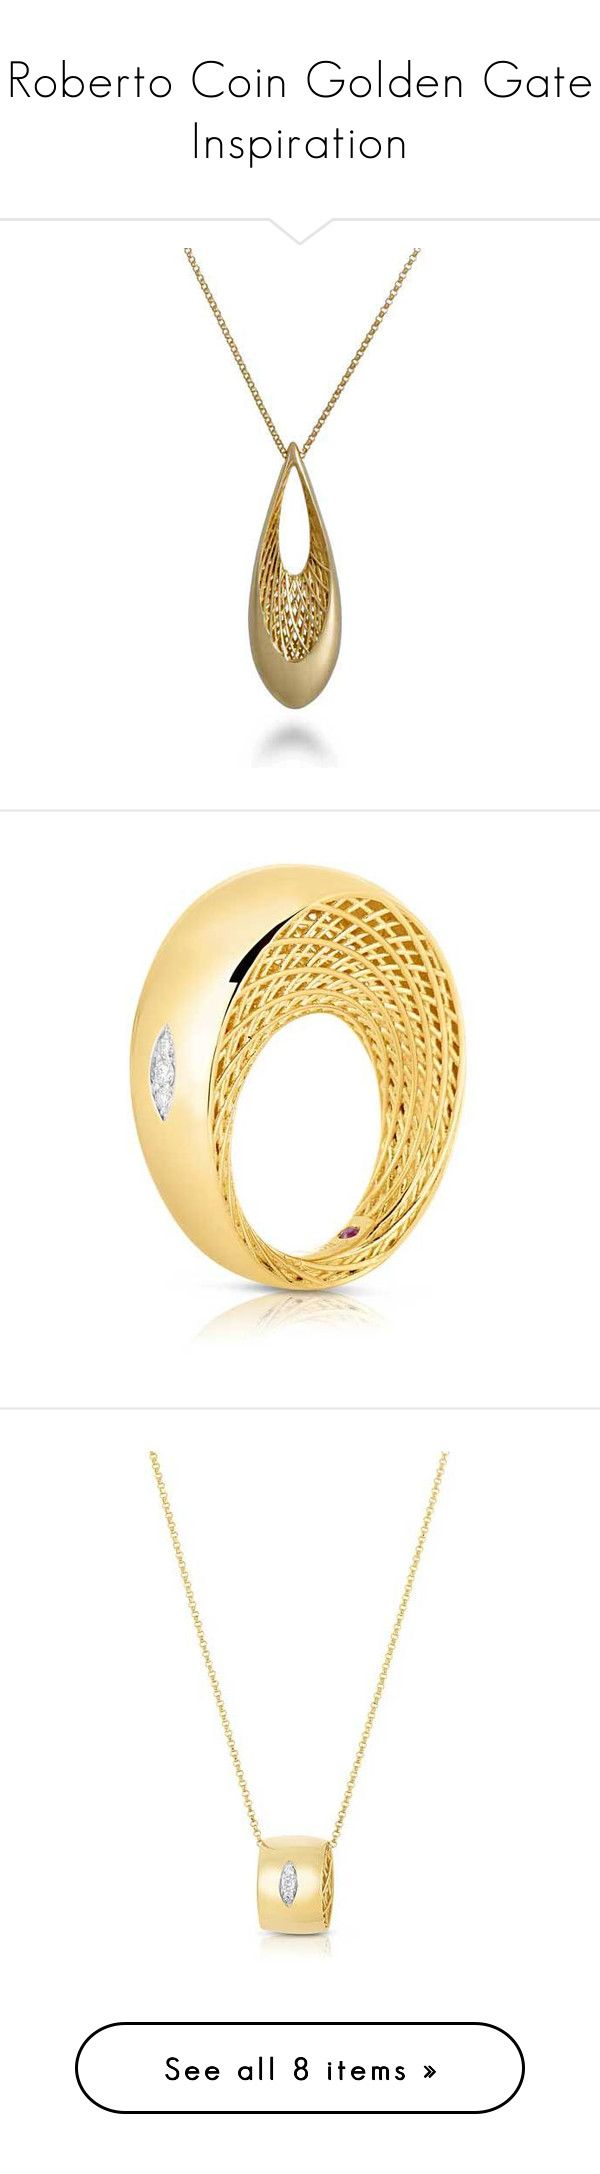 """""""Roberto Coin Golden Gate Inspiration"""" by jrdunn ❤ liked on Polyvore featuring goldengate, robertocoin, Roberto Coin, jewelry, necklaces, yellow gold necklace, teardrop pendant necklace, golden jewelry, roberto coin necklace and yellow gold jewelry"""